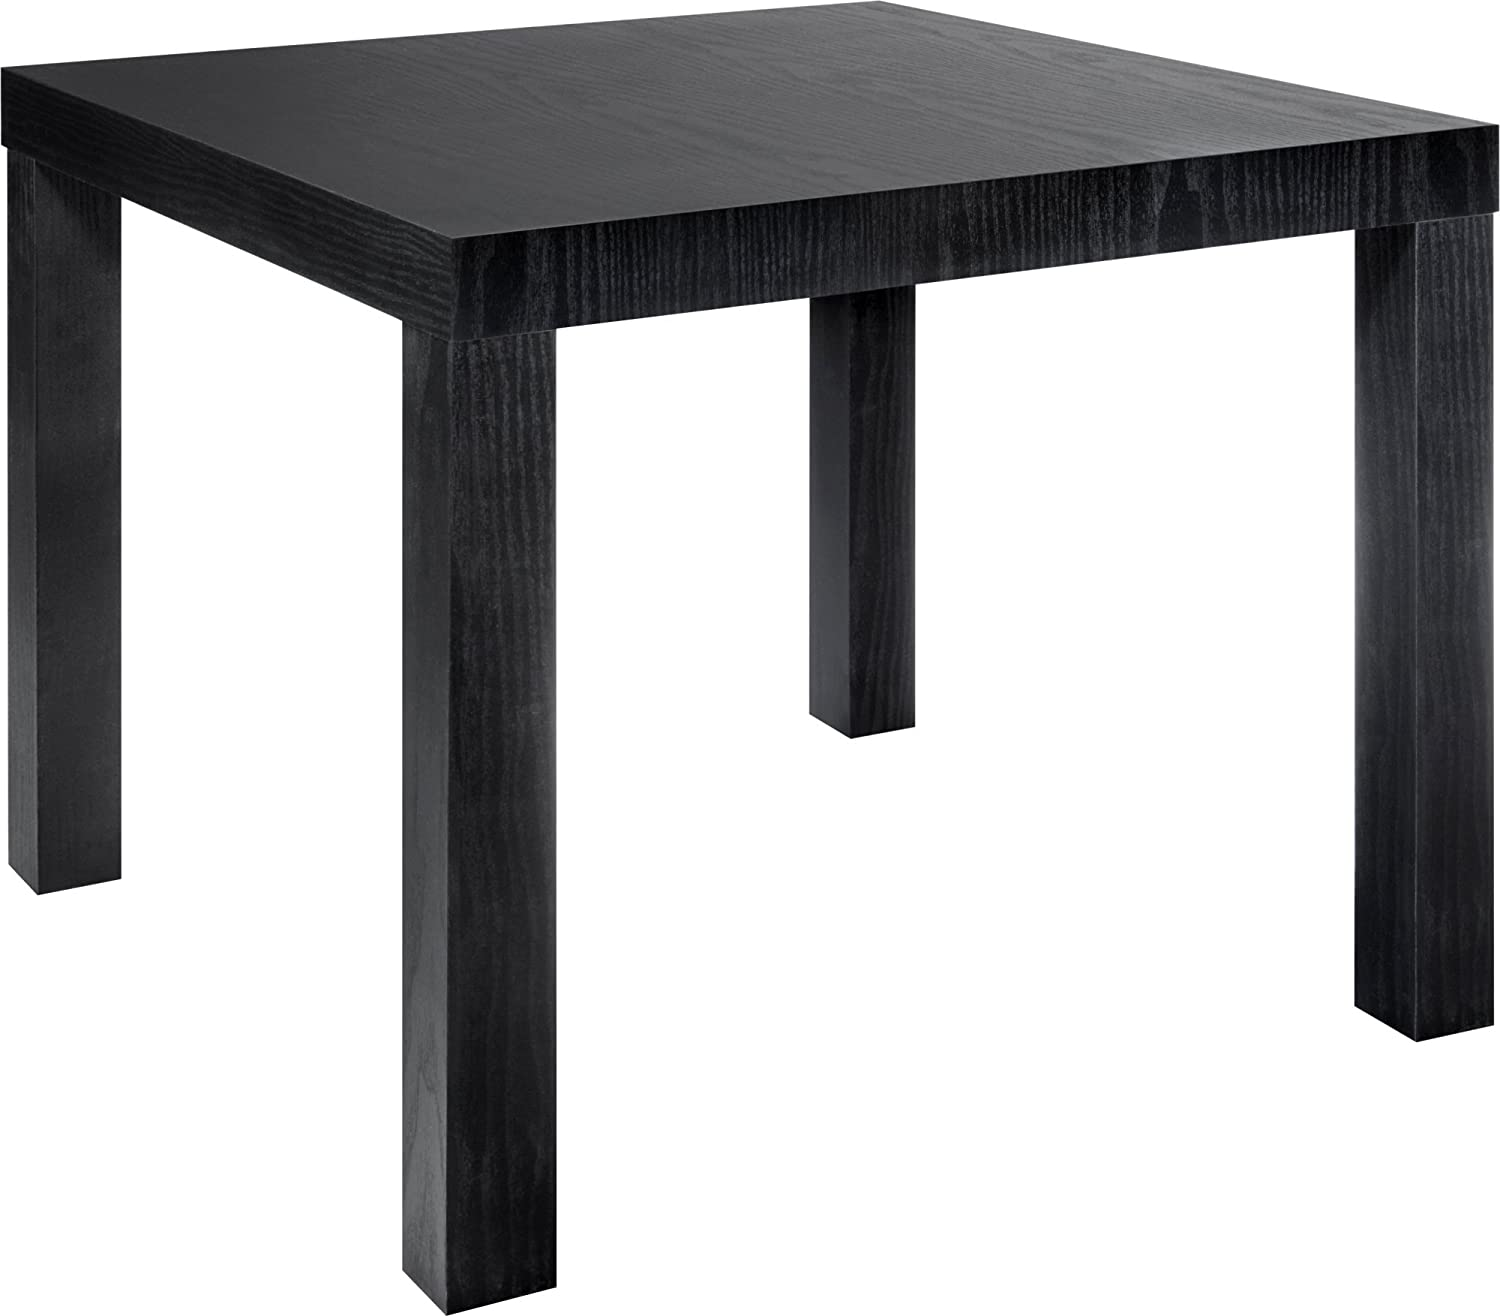 Modern black side table - Amazon Com Dhp Parsons Modern End Table Black Wood Grain Kitchen Dining